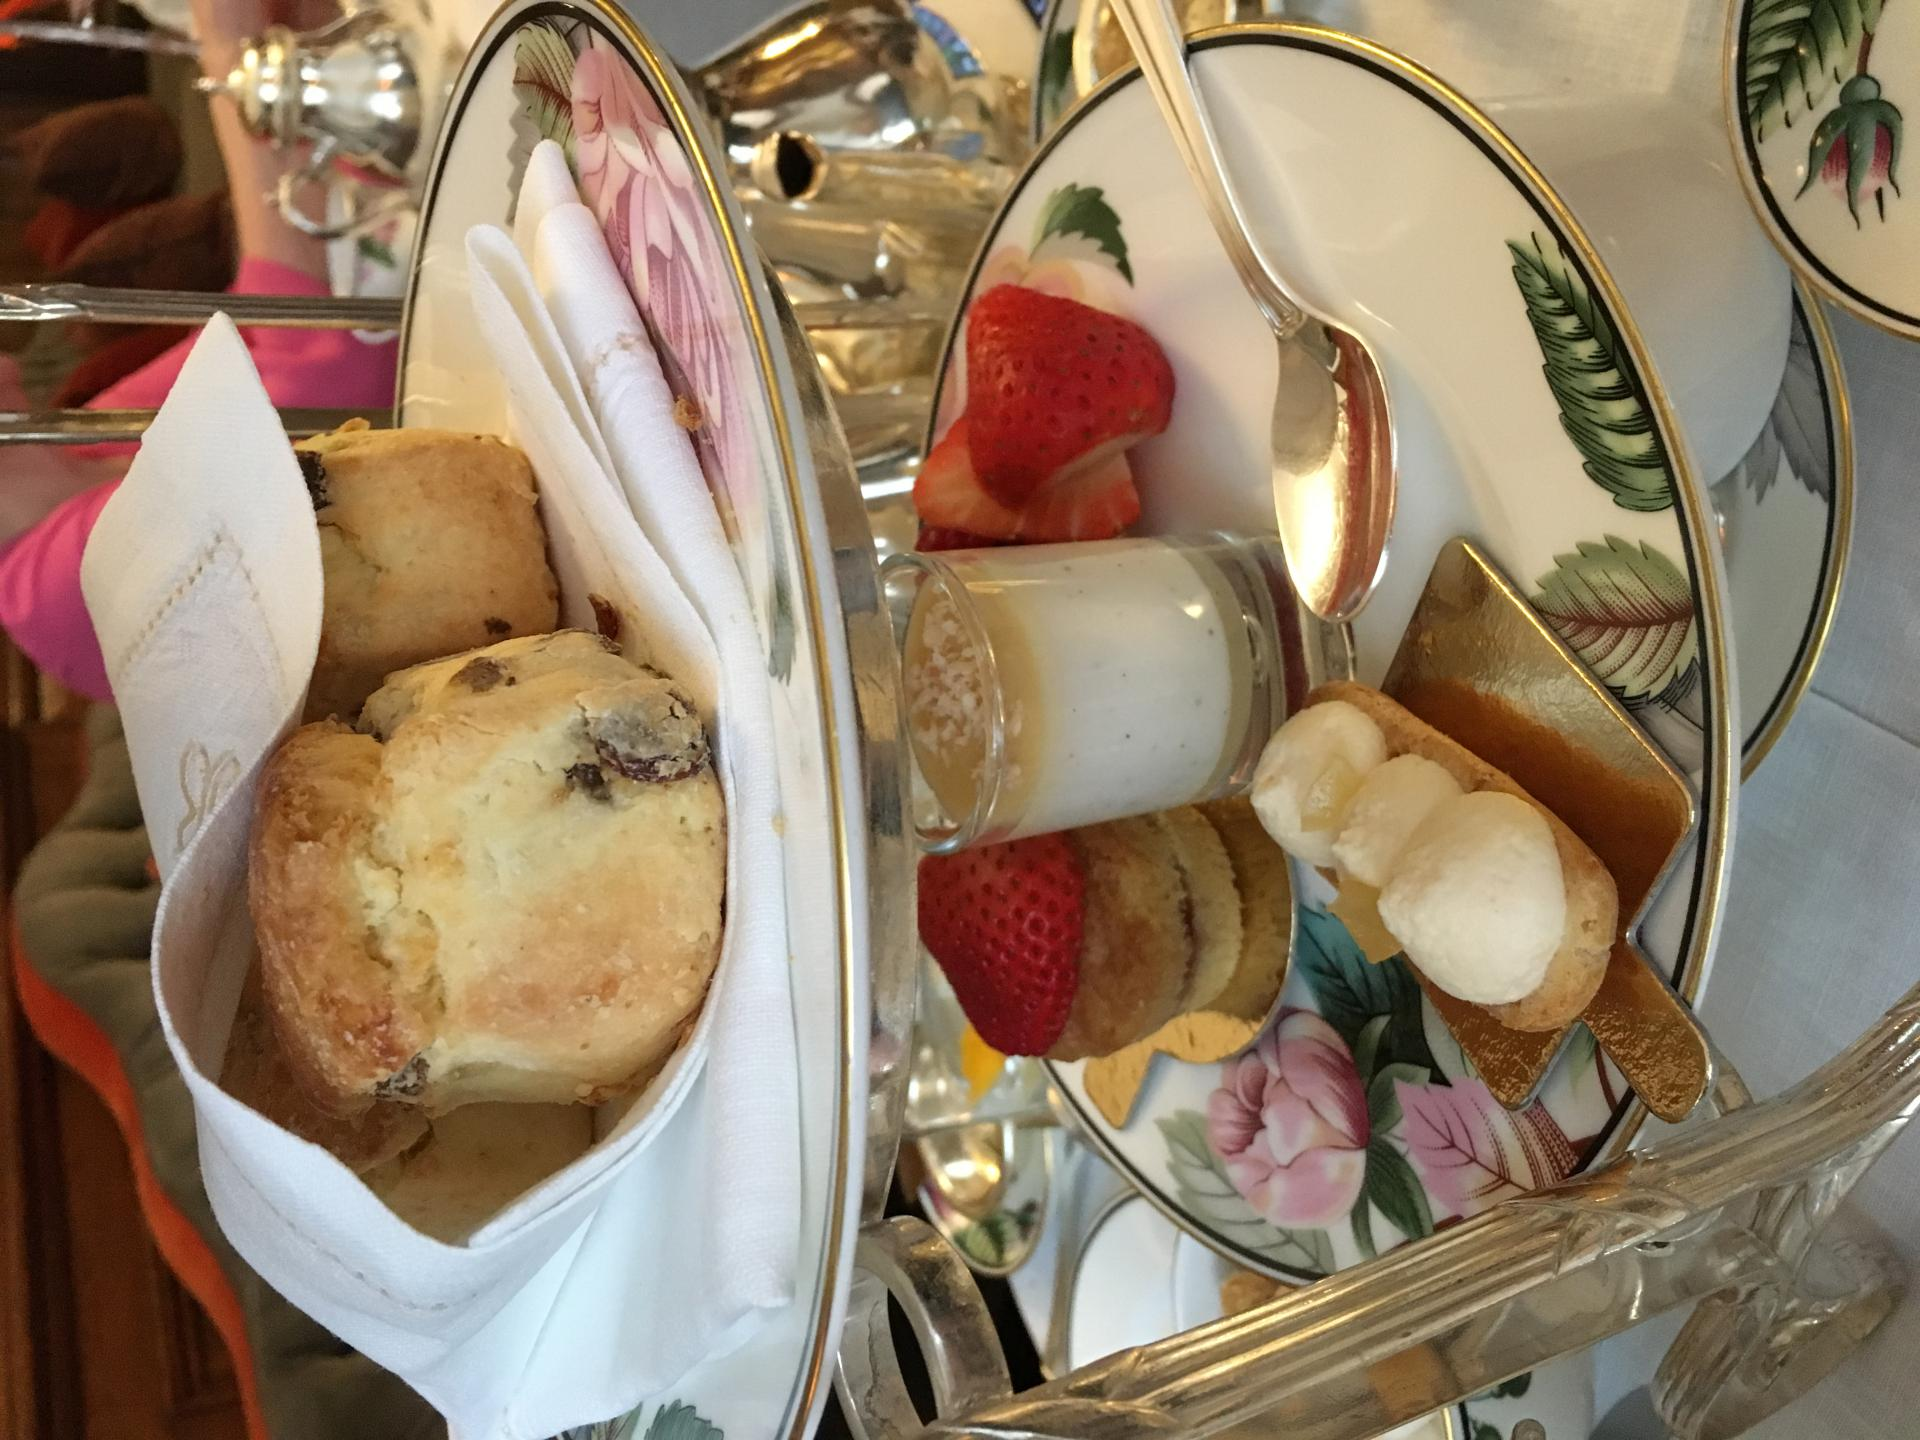 London adventures of a gluten free globetrekker adventures of a gluten free globetrekker gluten free afternoon tea at browns hotel london gluten negle Image collections